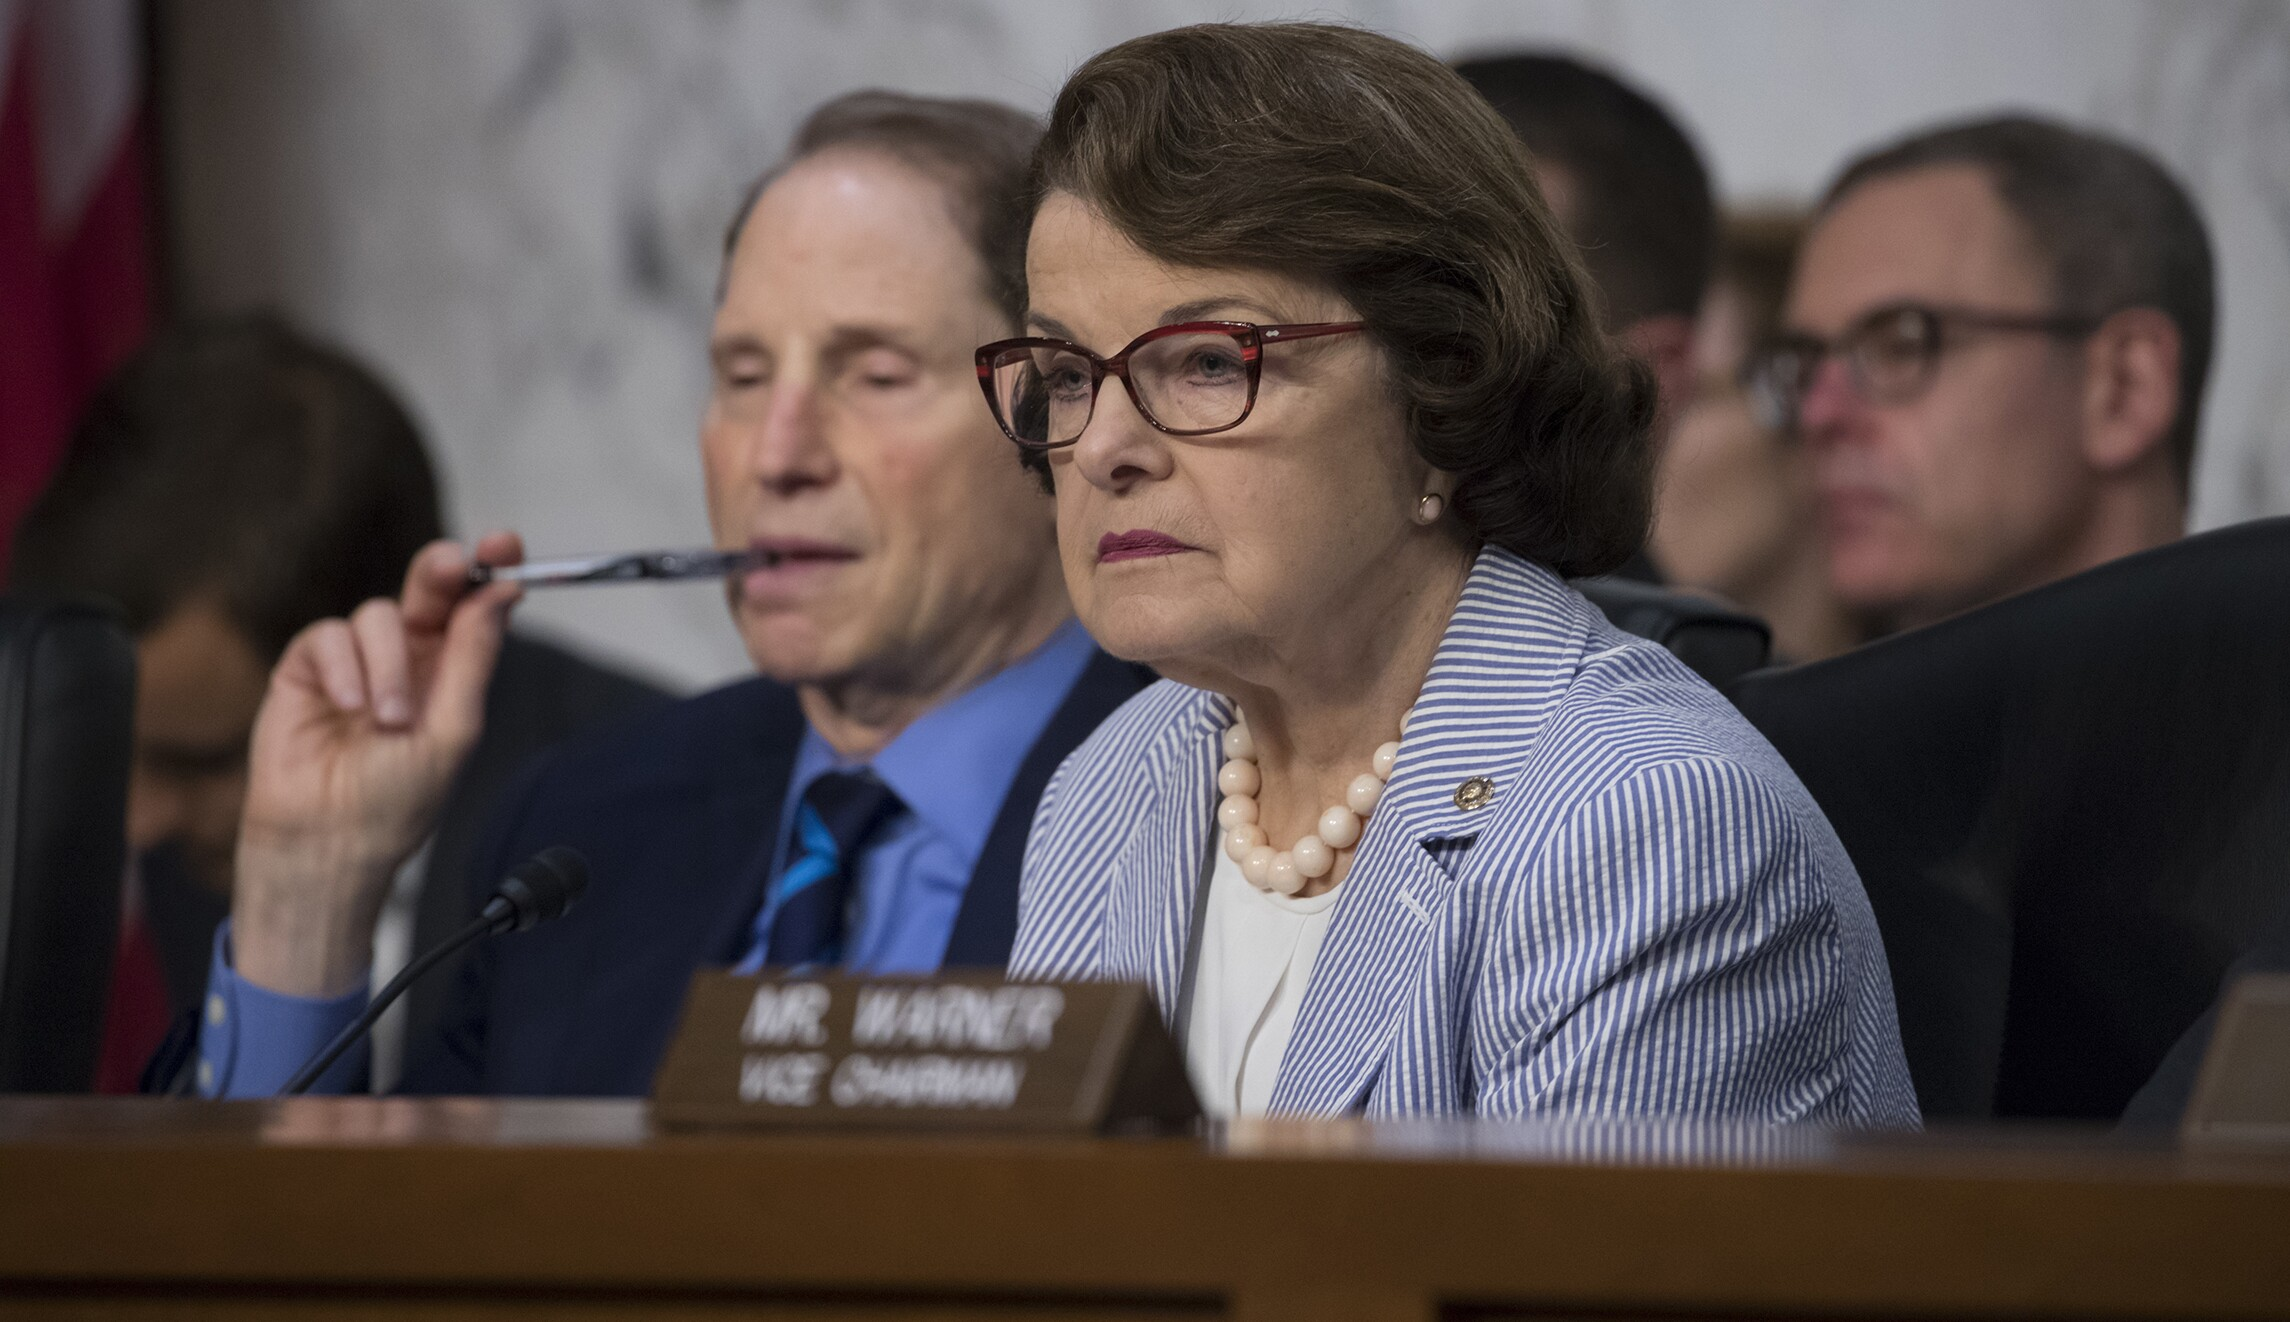 Dianne Feinstein: Senate panel is moving too quickly to approve